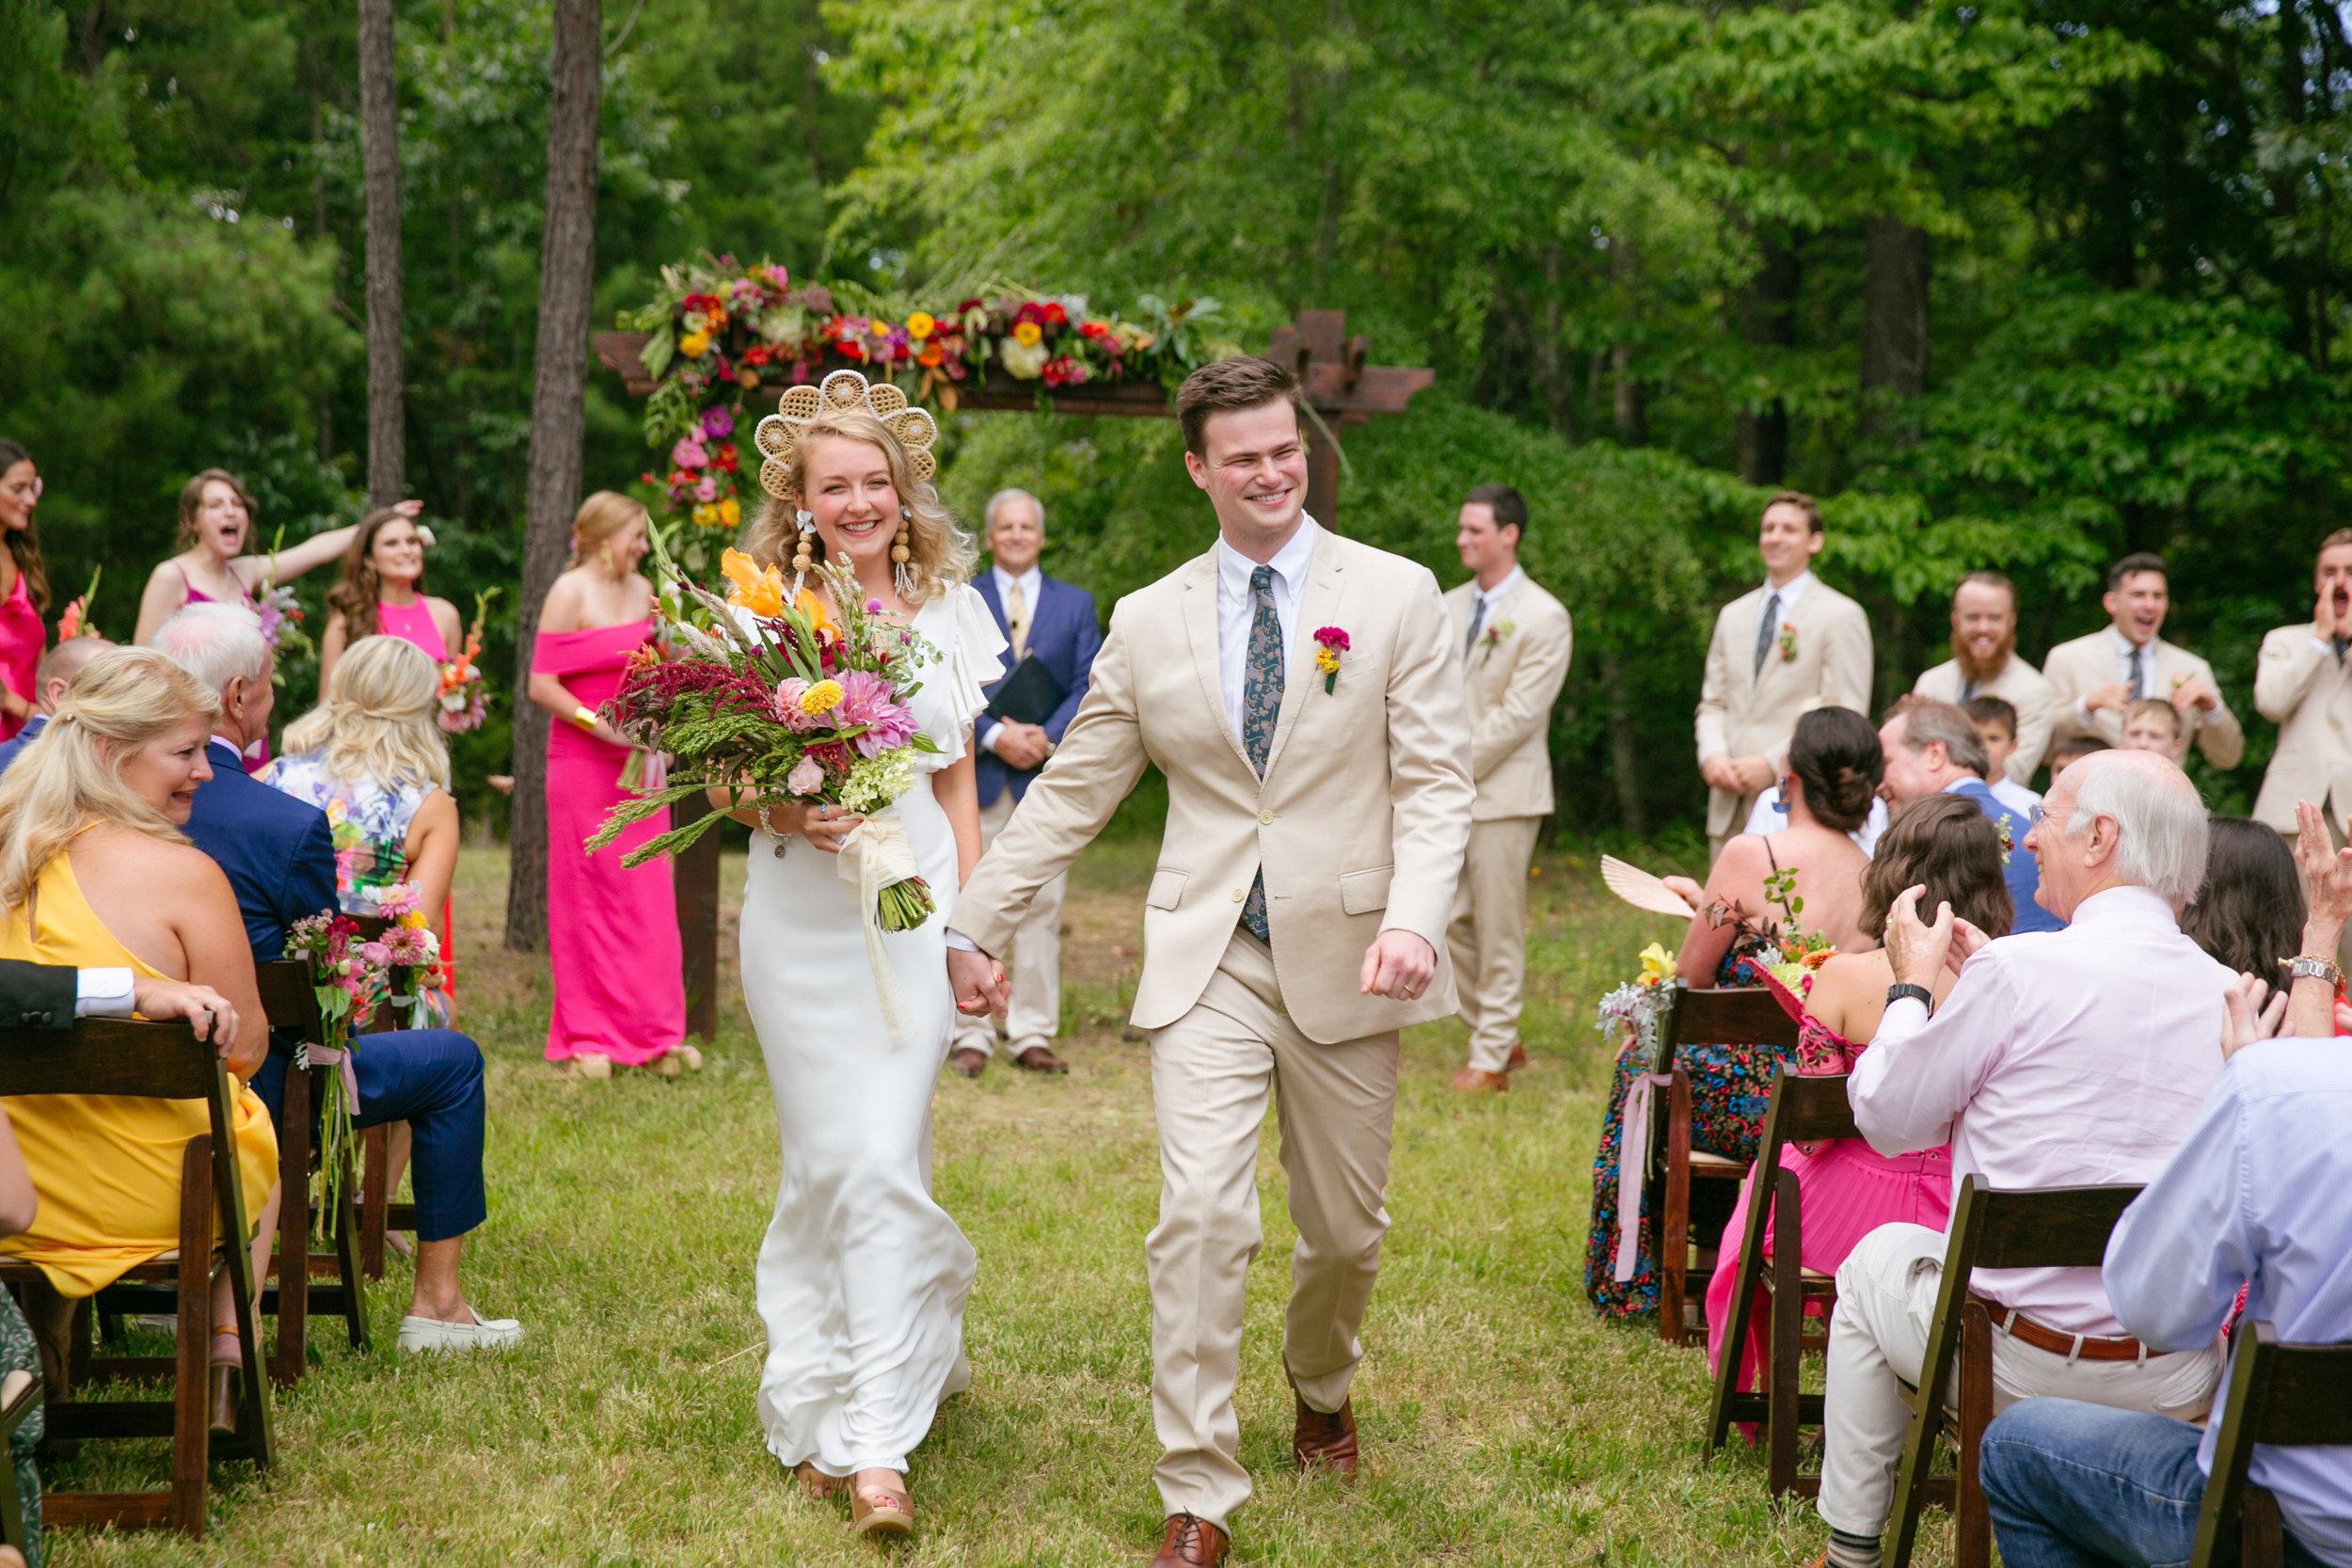 47-2019-TC-Wedding-web.jpg